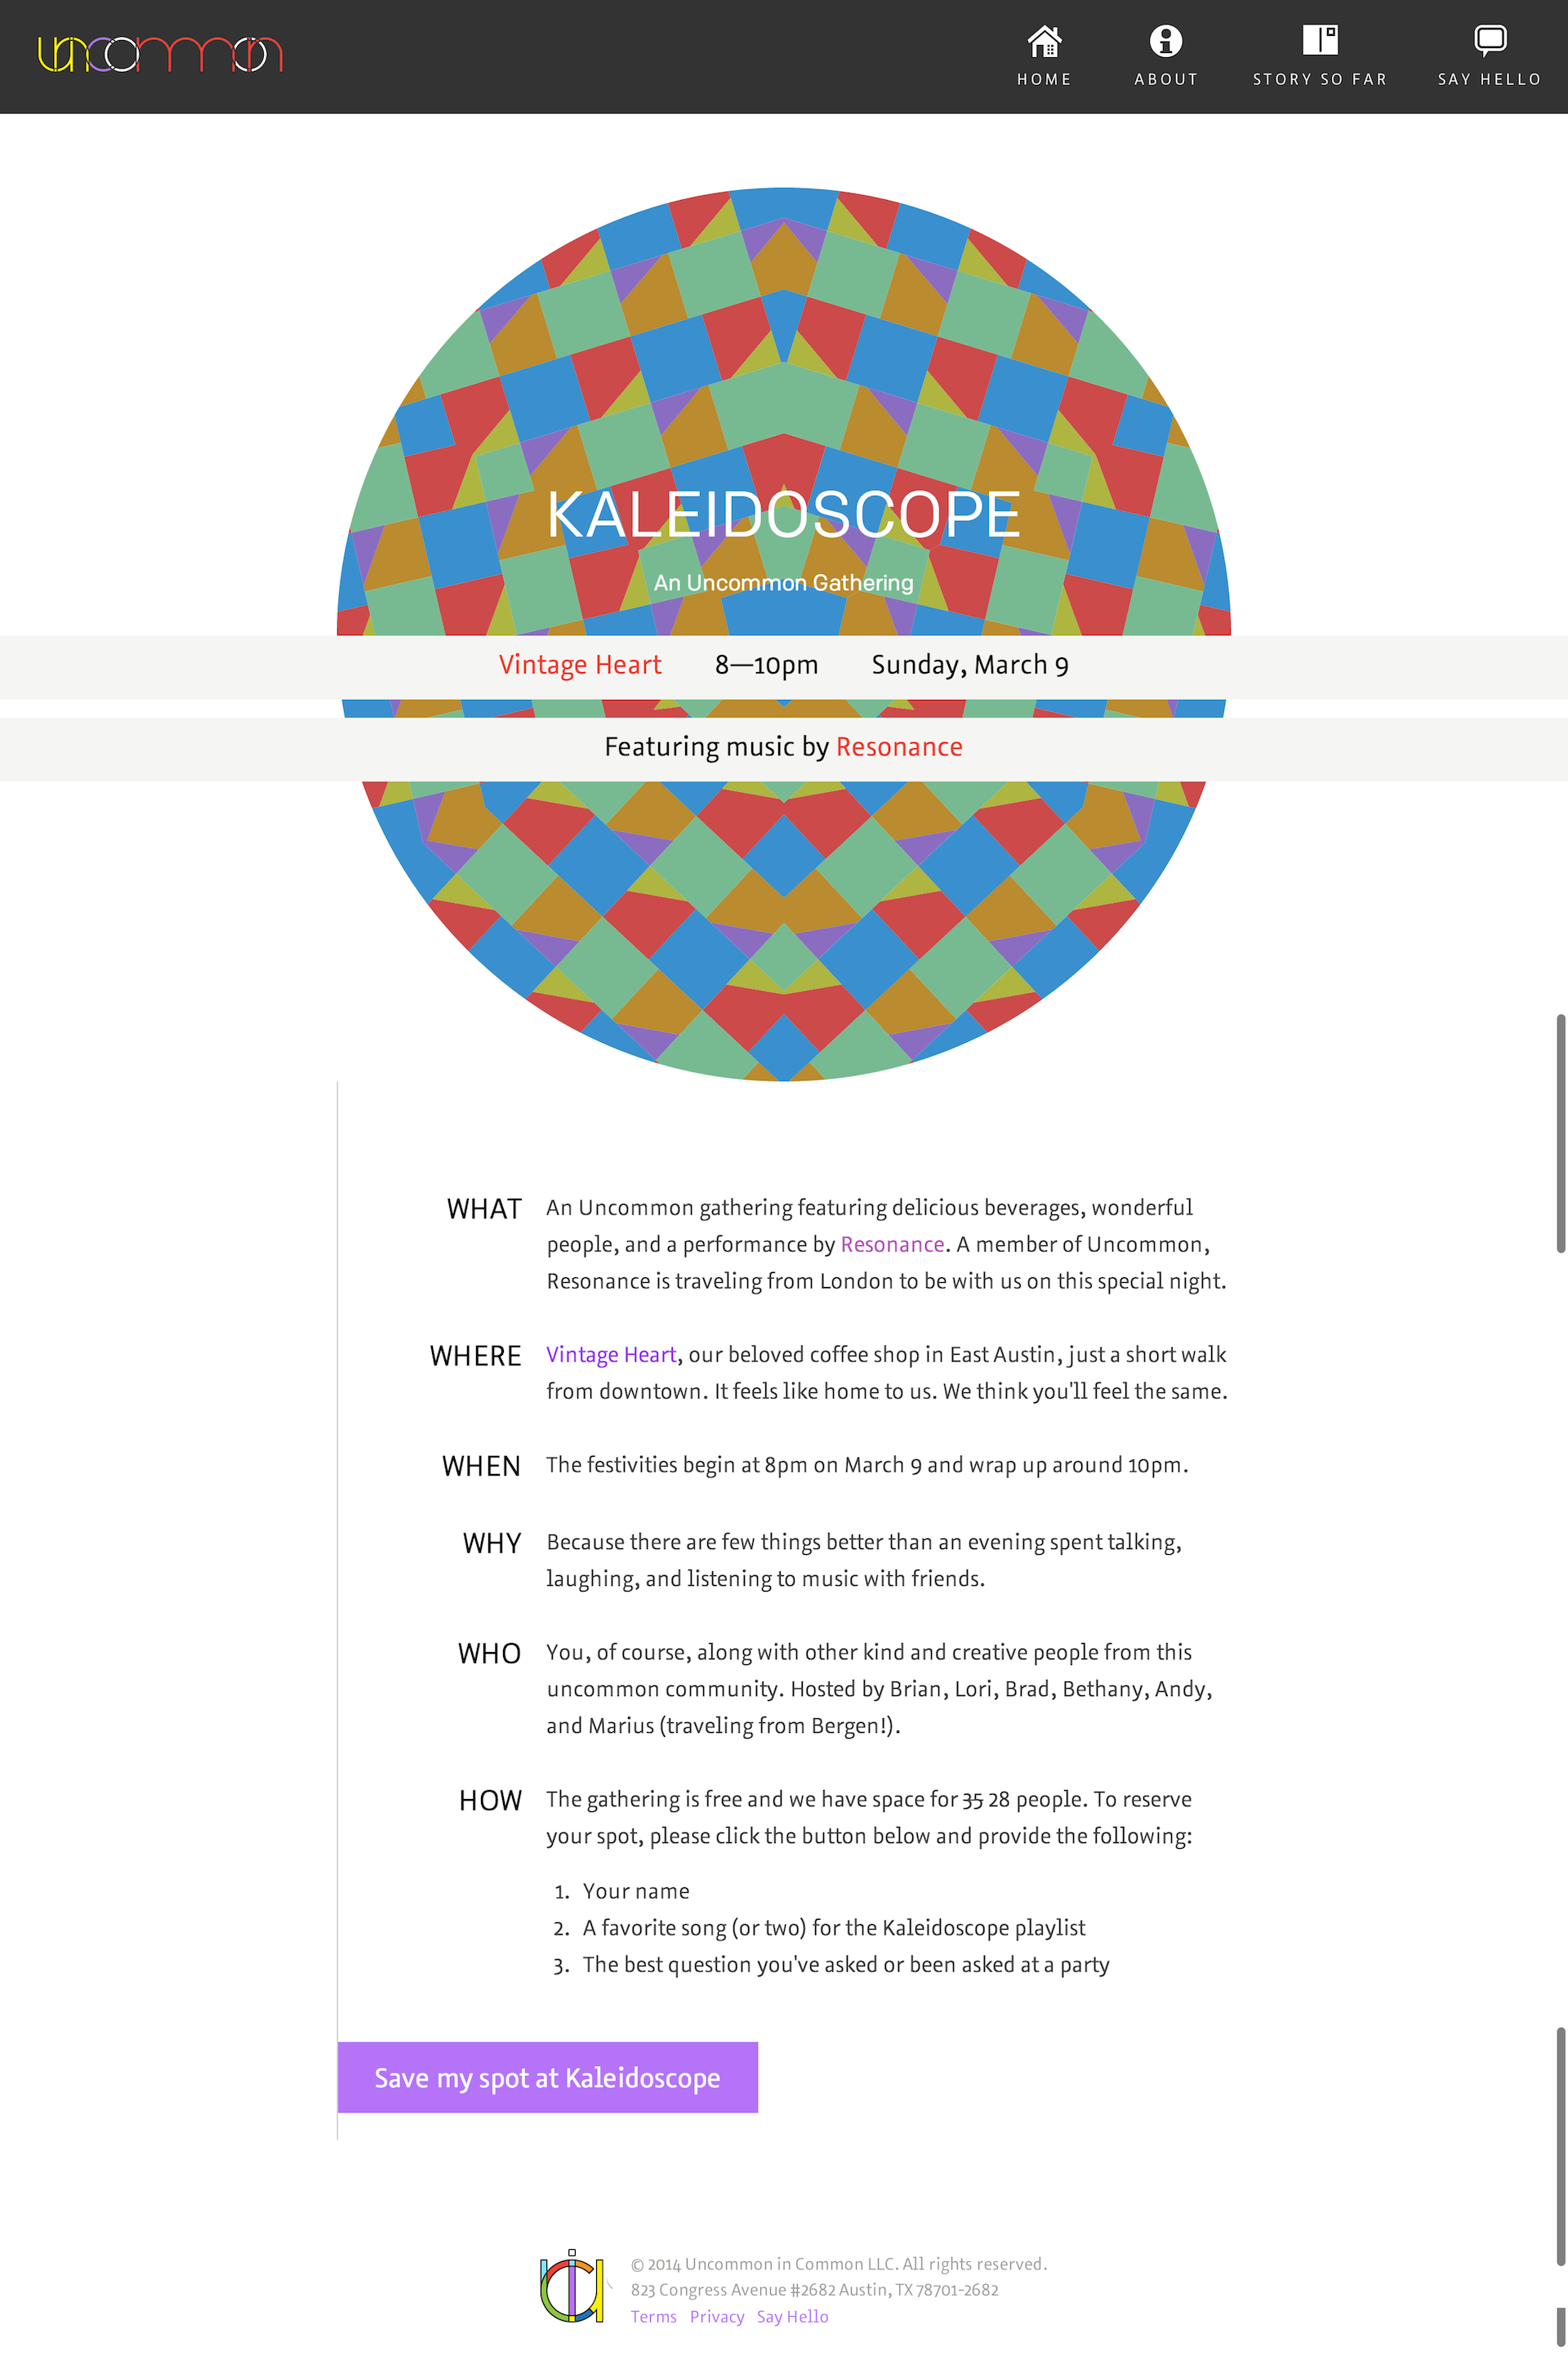 The web page inviting people to attend the Kaleidoscope gathering.